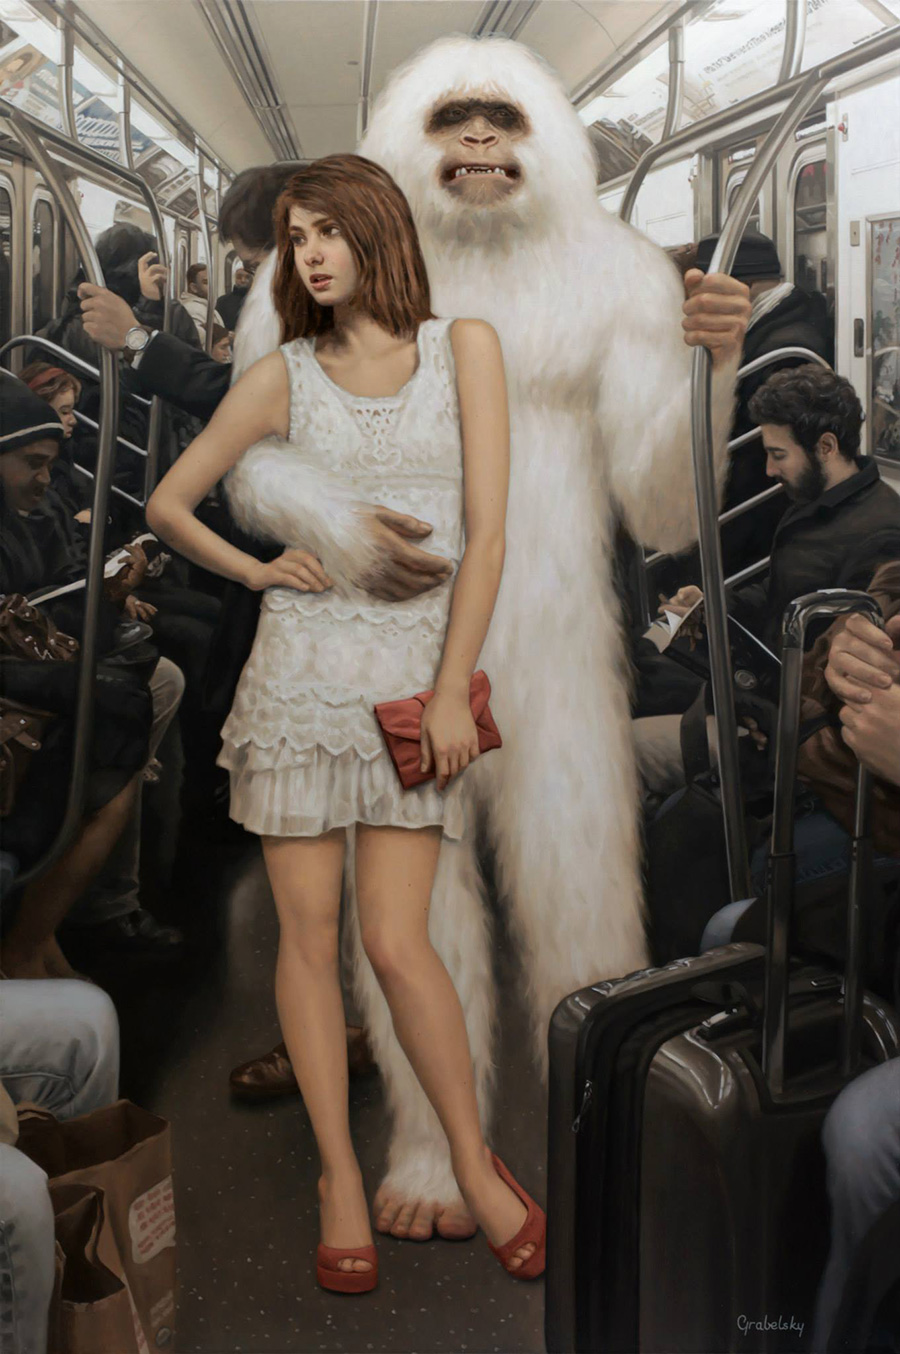 Emma Snow & The Yeti - Anomaly - Oil Painting by Matthew Grabelsky